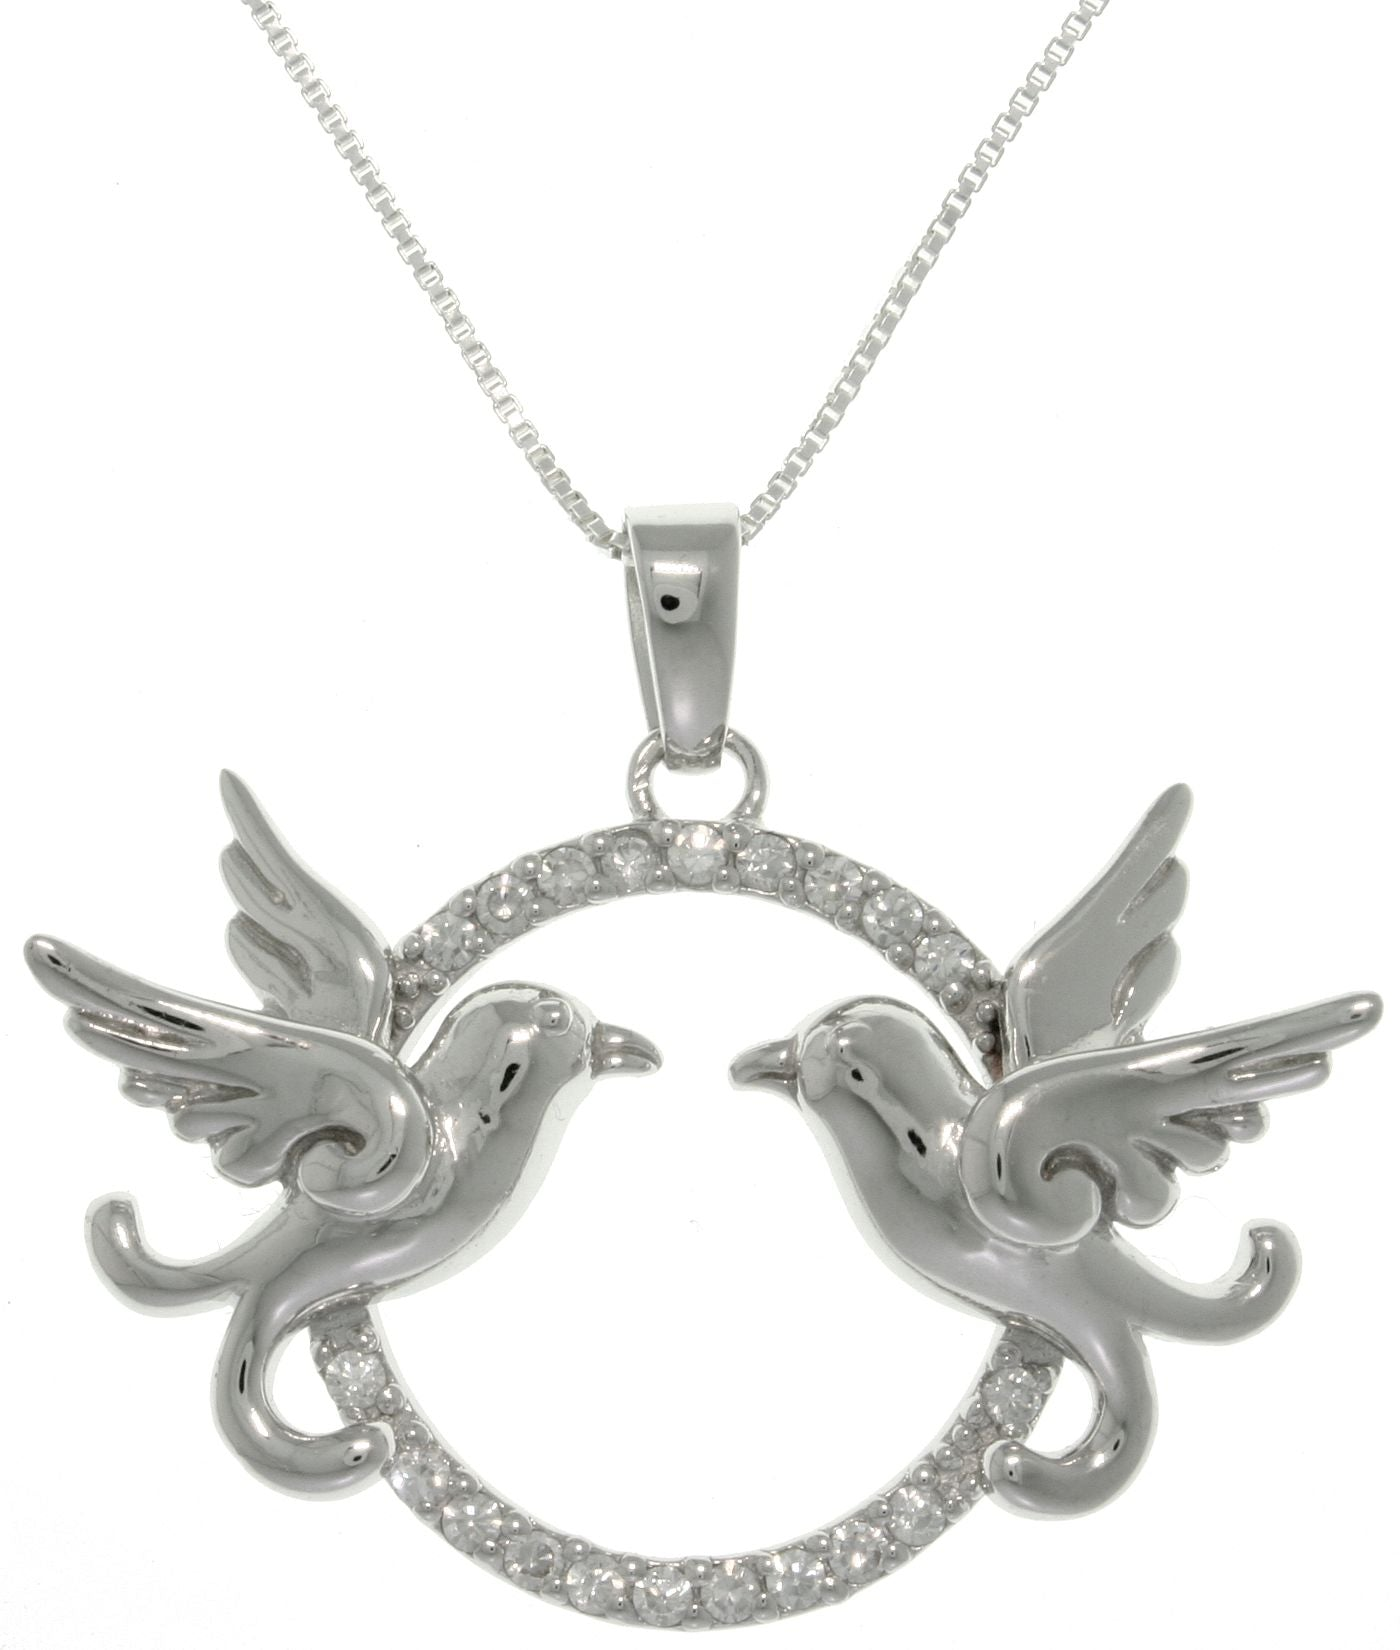 Jewelry Trends Sterling Silver Love Birds Dove Round Pave CZ Pendant with Box Chain Necklace Birthday Gift